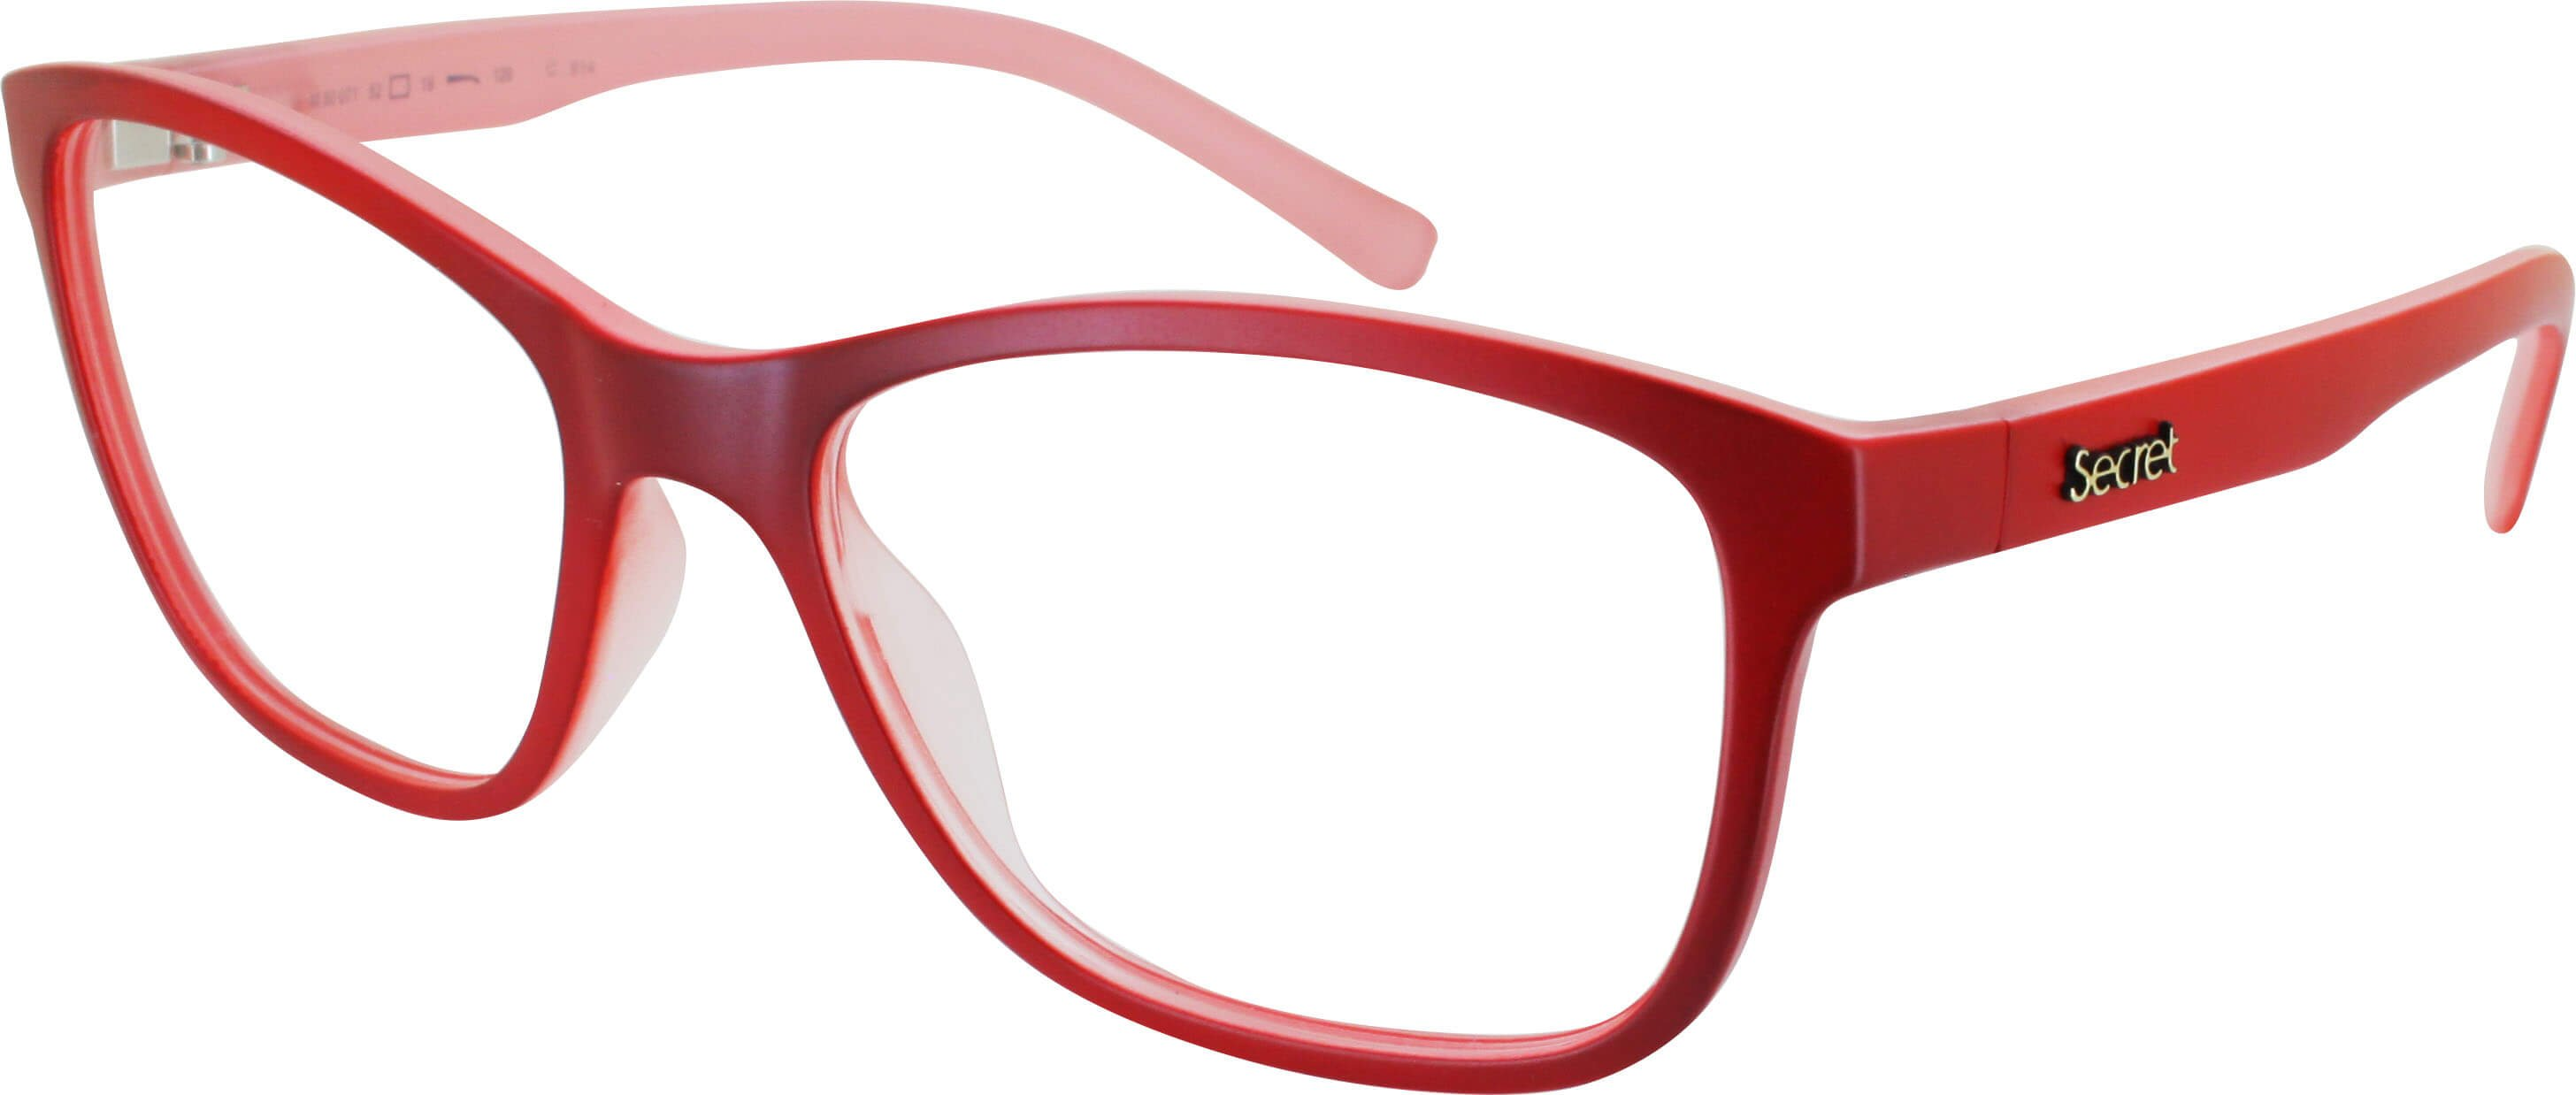 SECRET GRILAMID 80071 M.GLASSY RED/ROSE